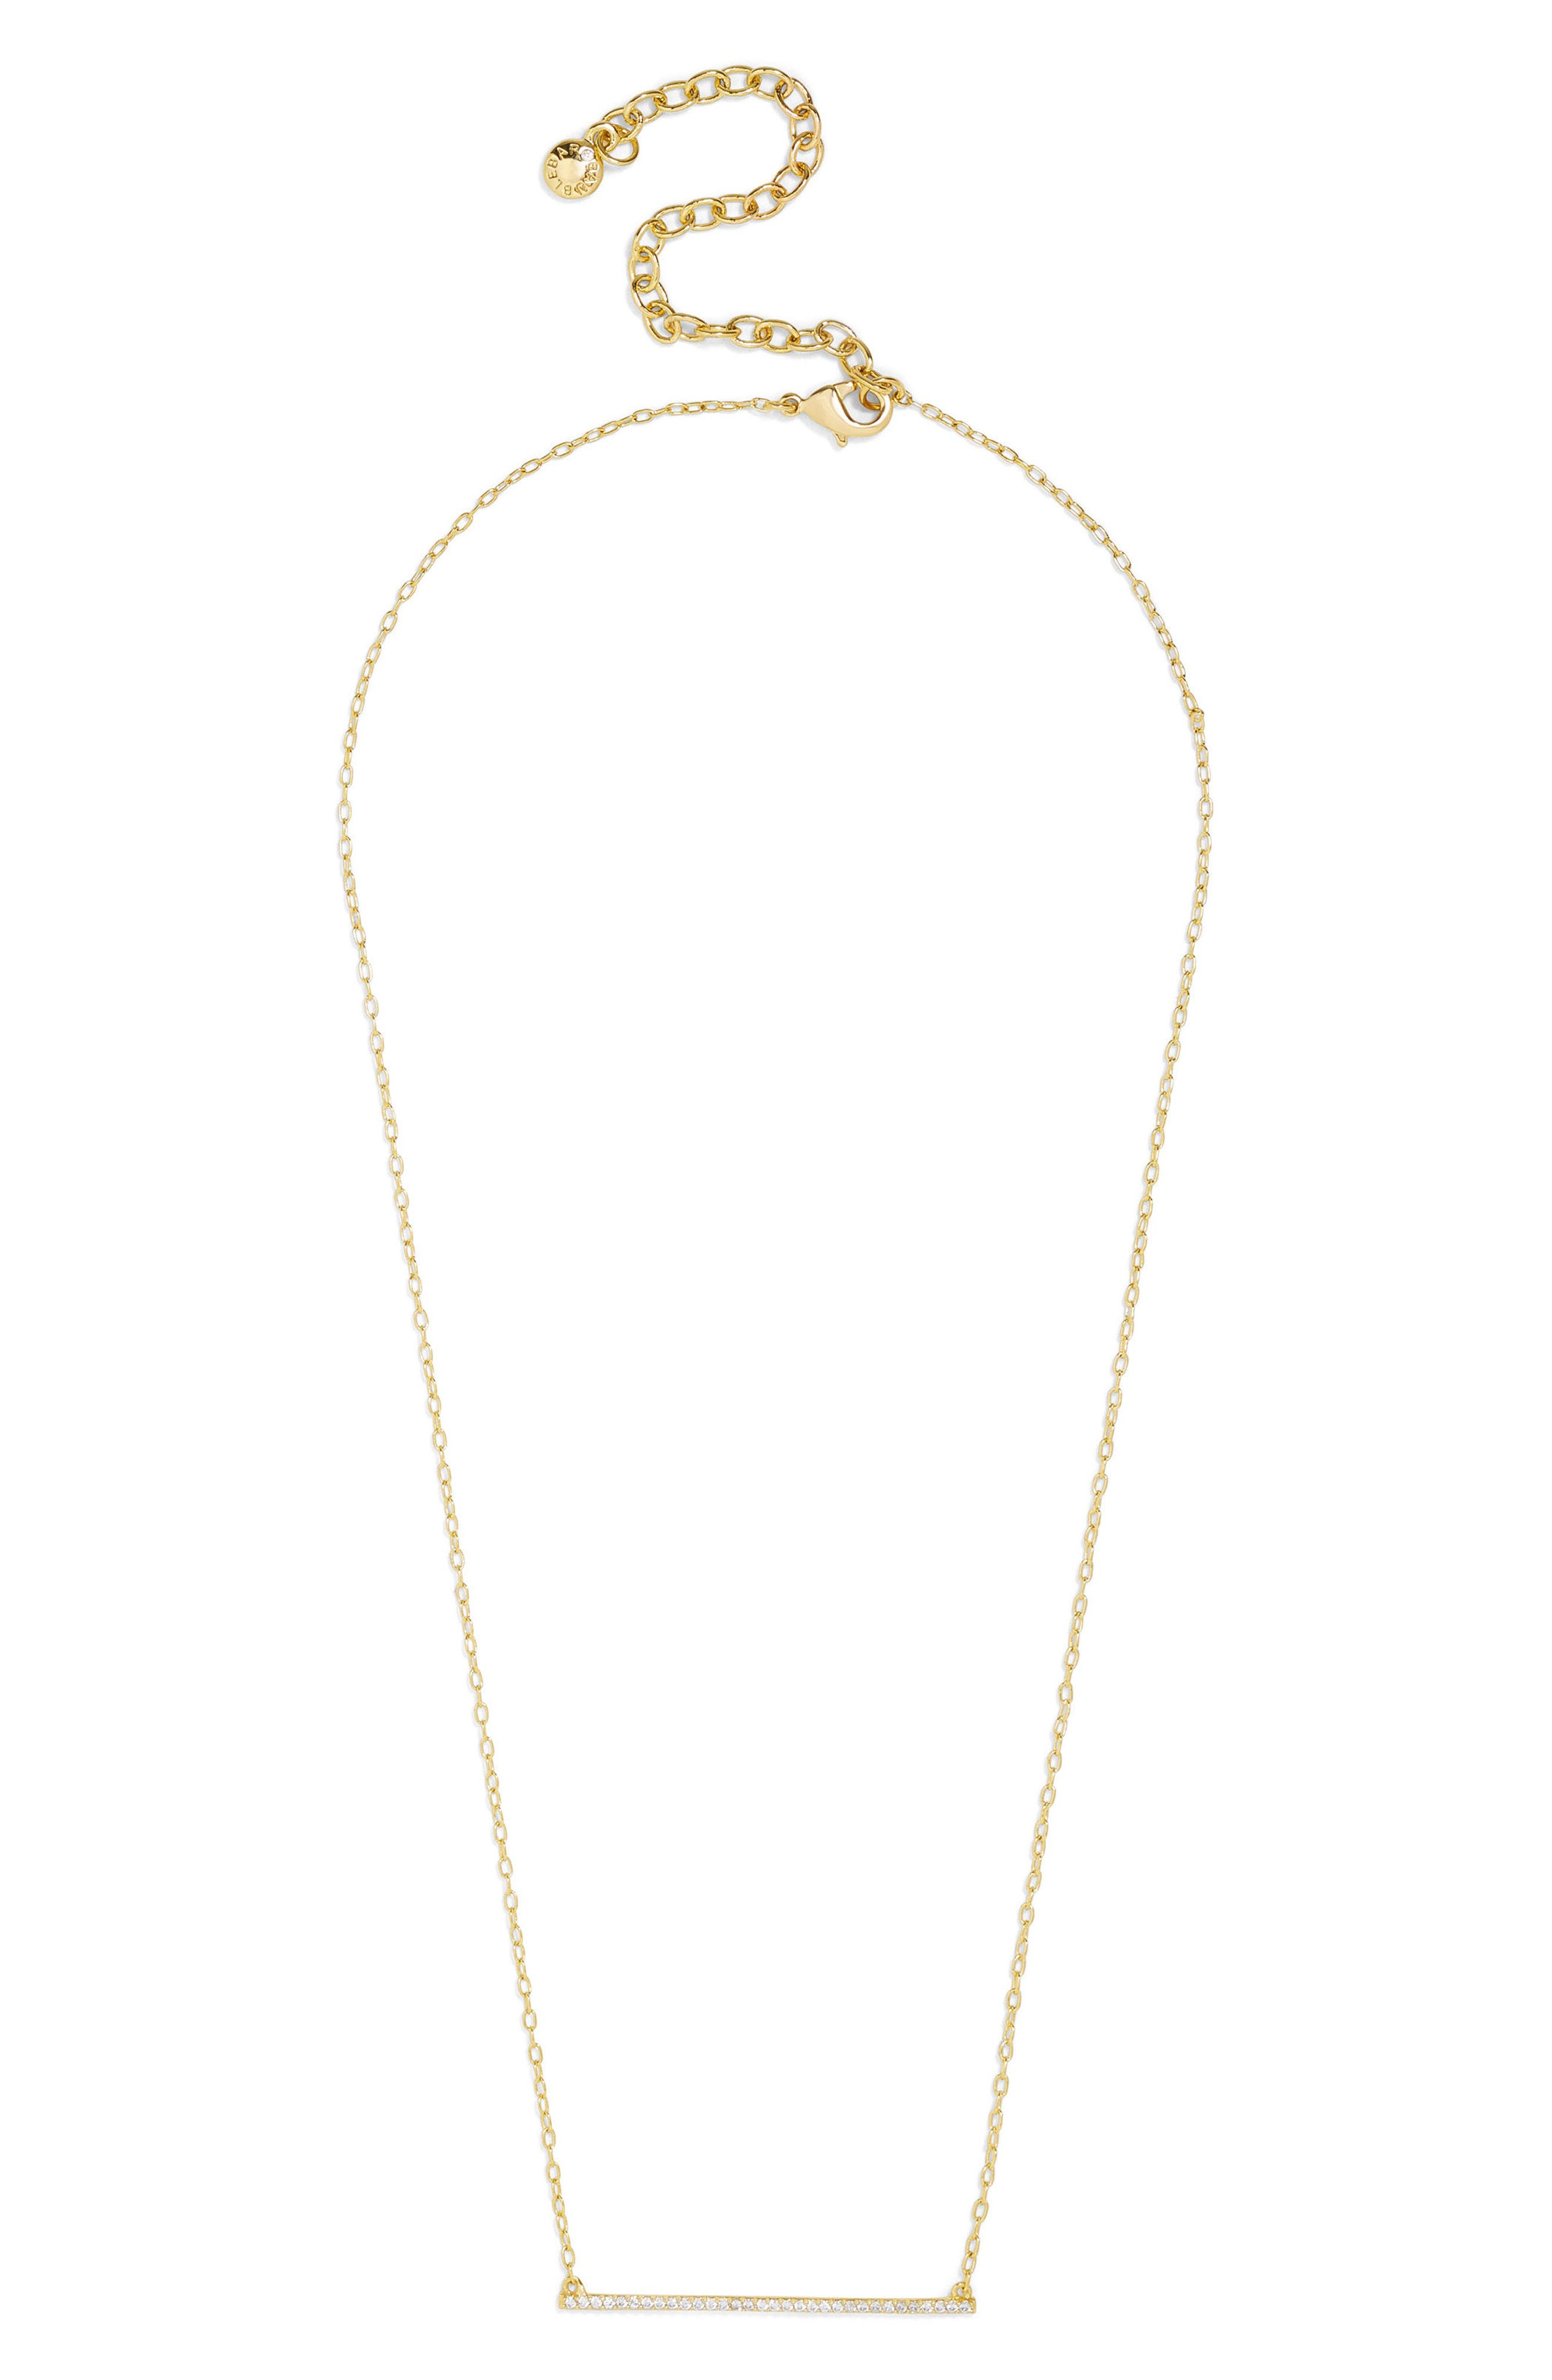 Kimberly Necklace,                         Main,                         color, Gold